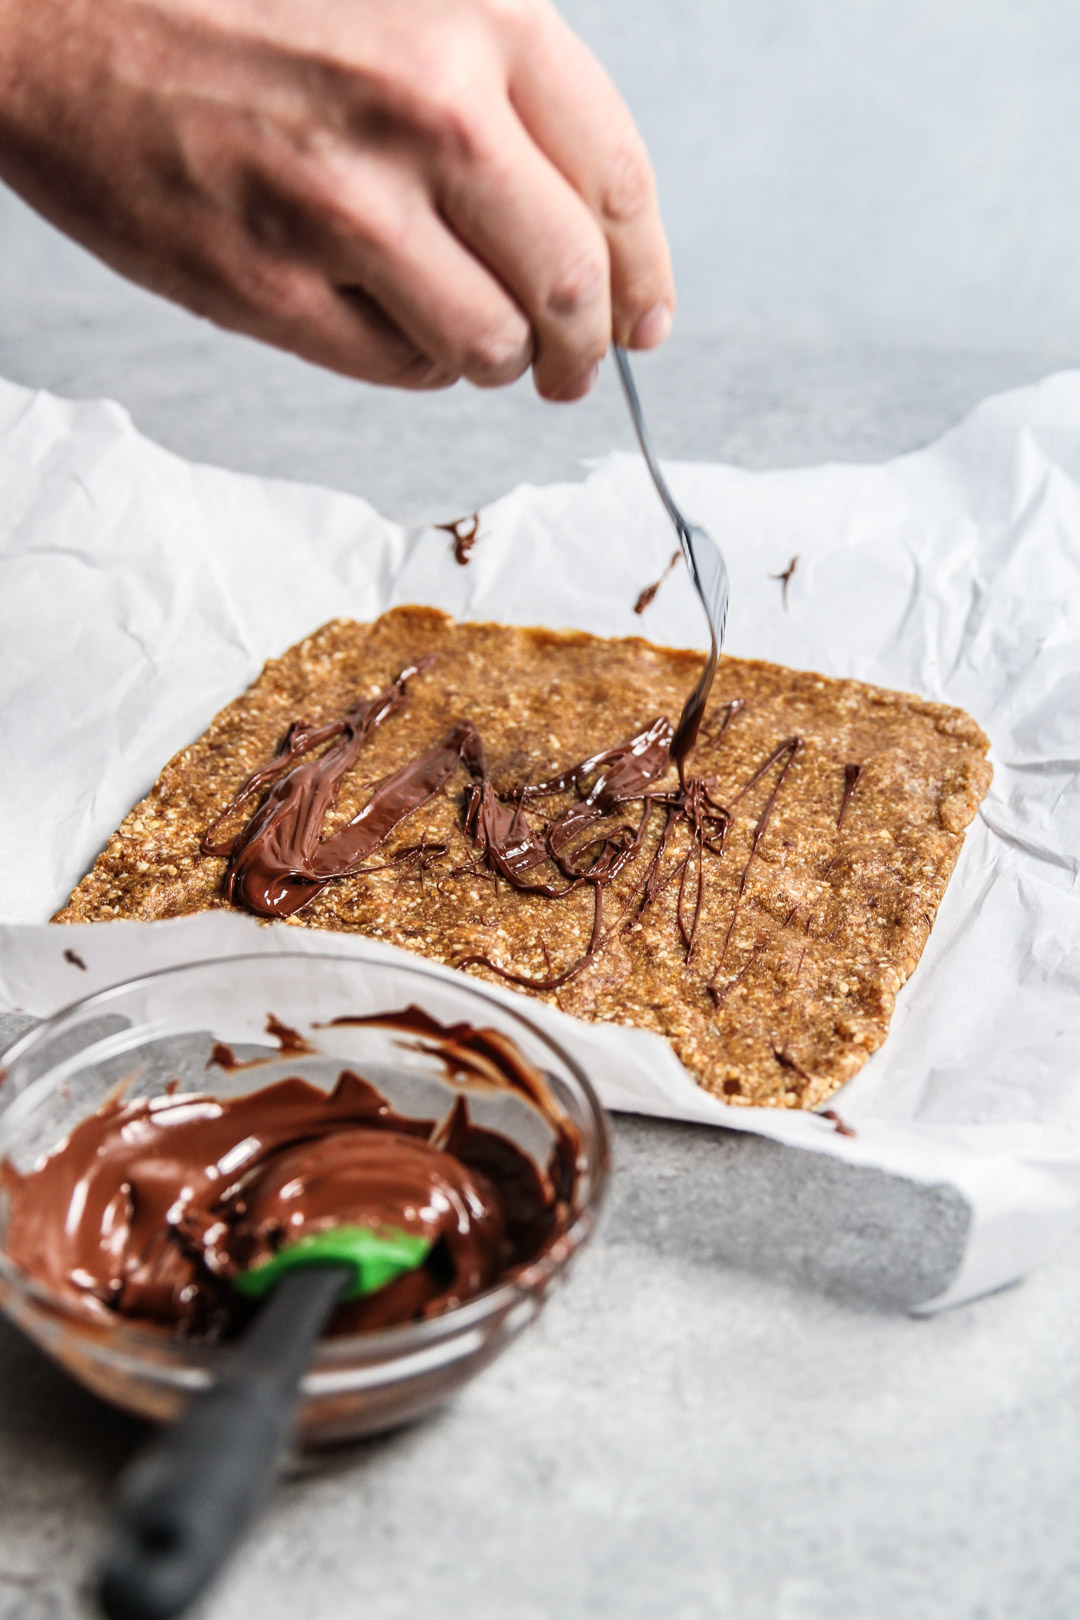 Drizzling chocolate on the 3 ingredient cashew snack bars